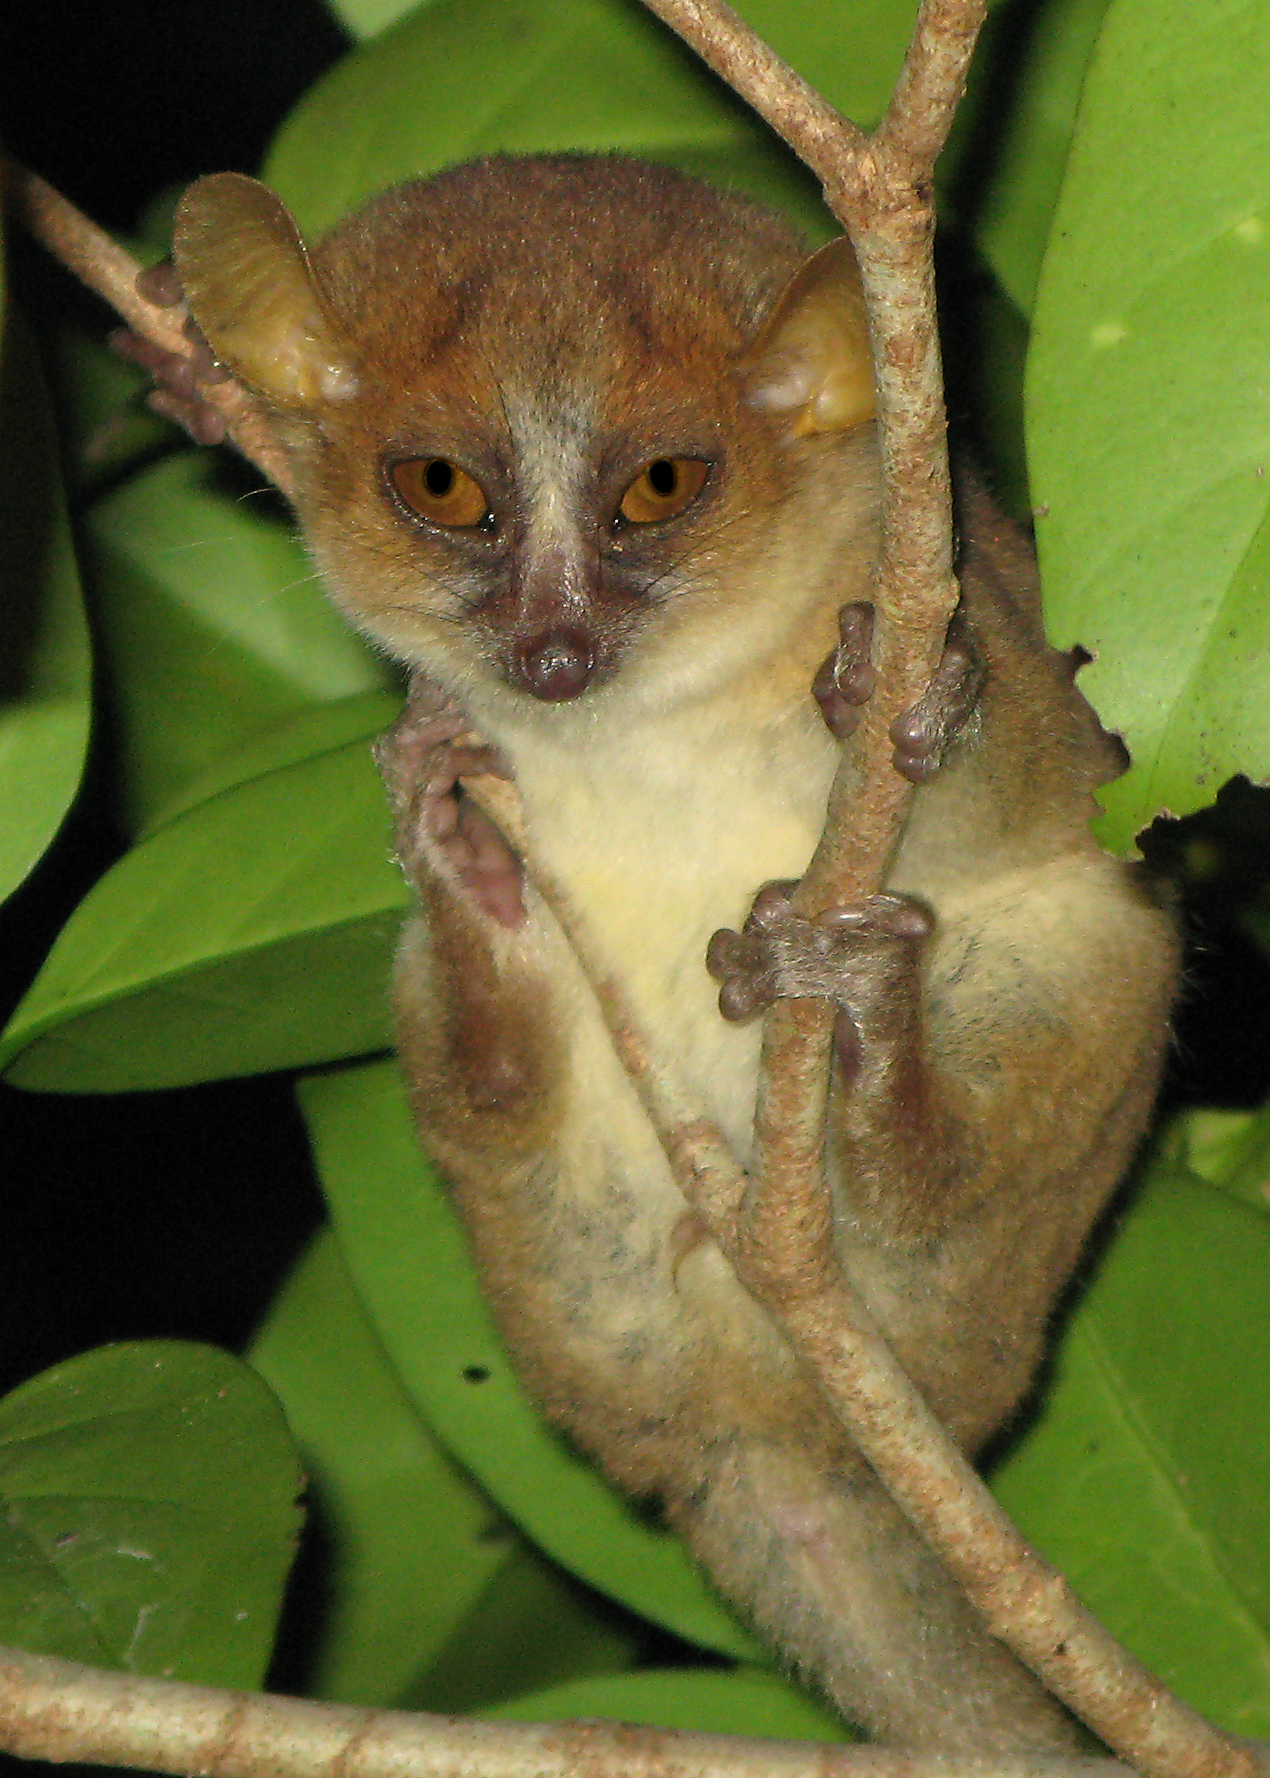 This mouse lemur is not impressed with your primate self.